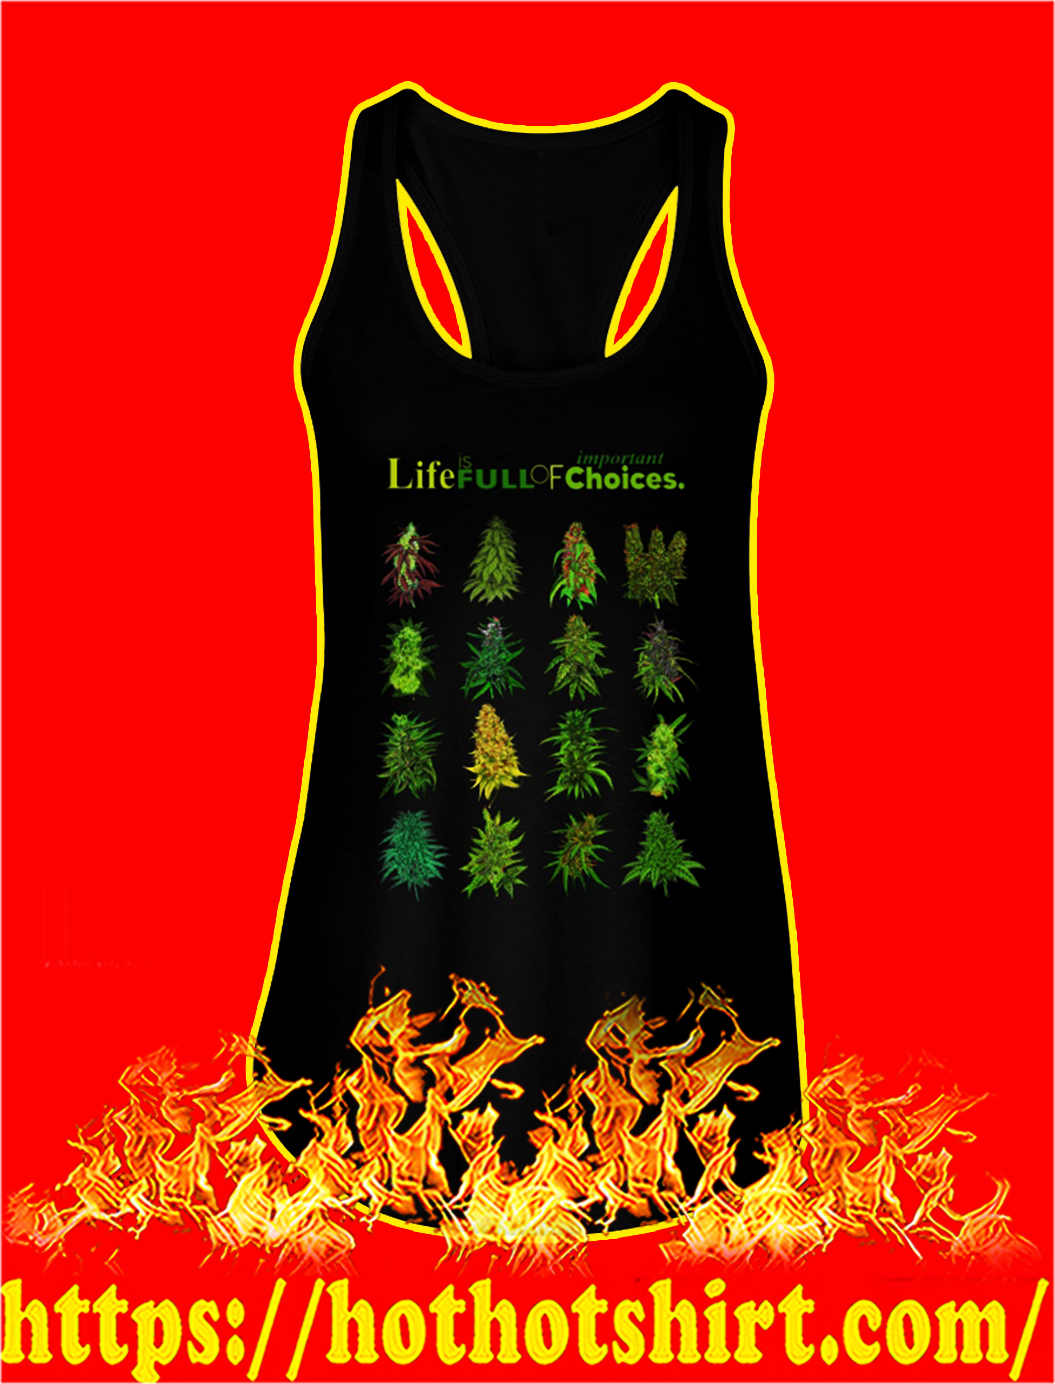 Weed Life is full of important choices tank top